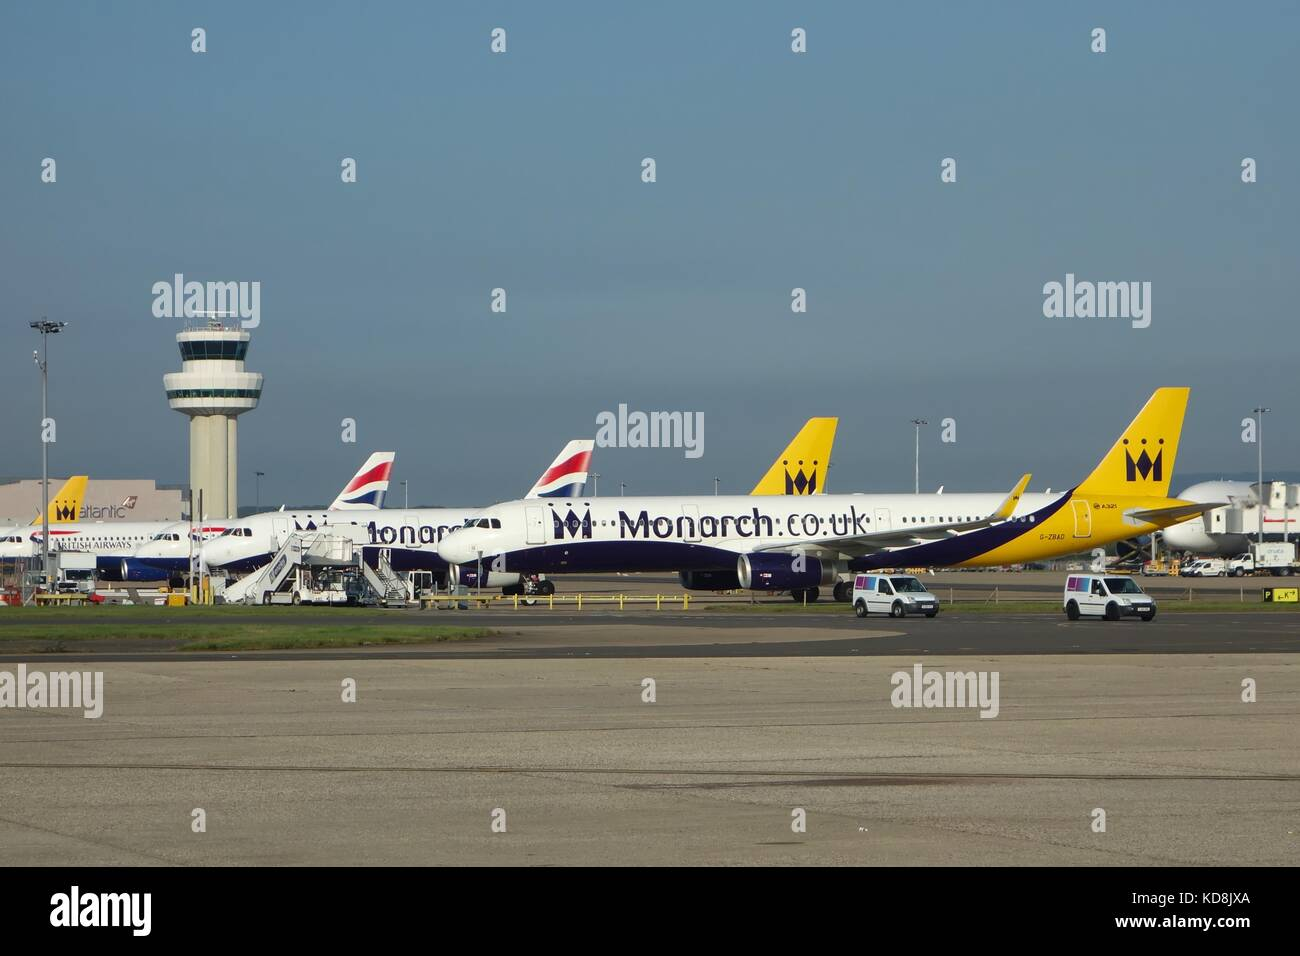 Monarch and British Airways aircraft on the tarmac at London Gatwick Airport, England, UK - Stock Image